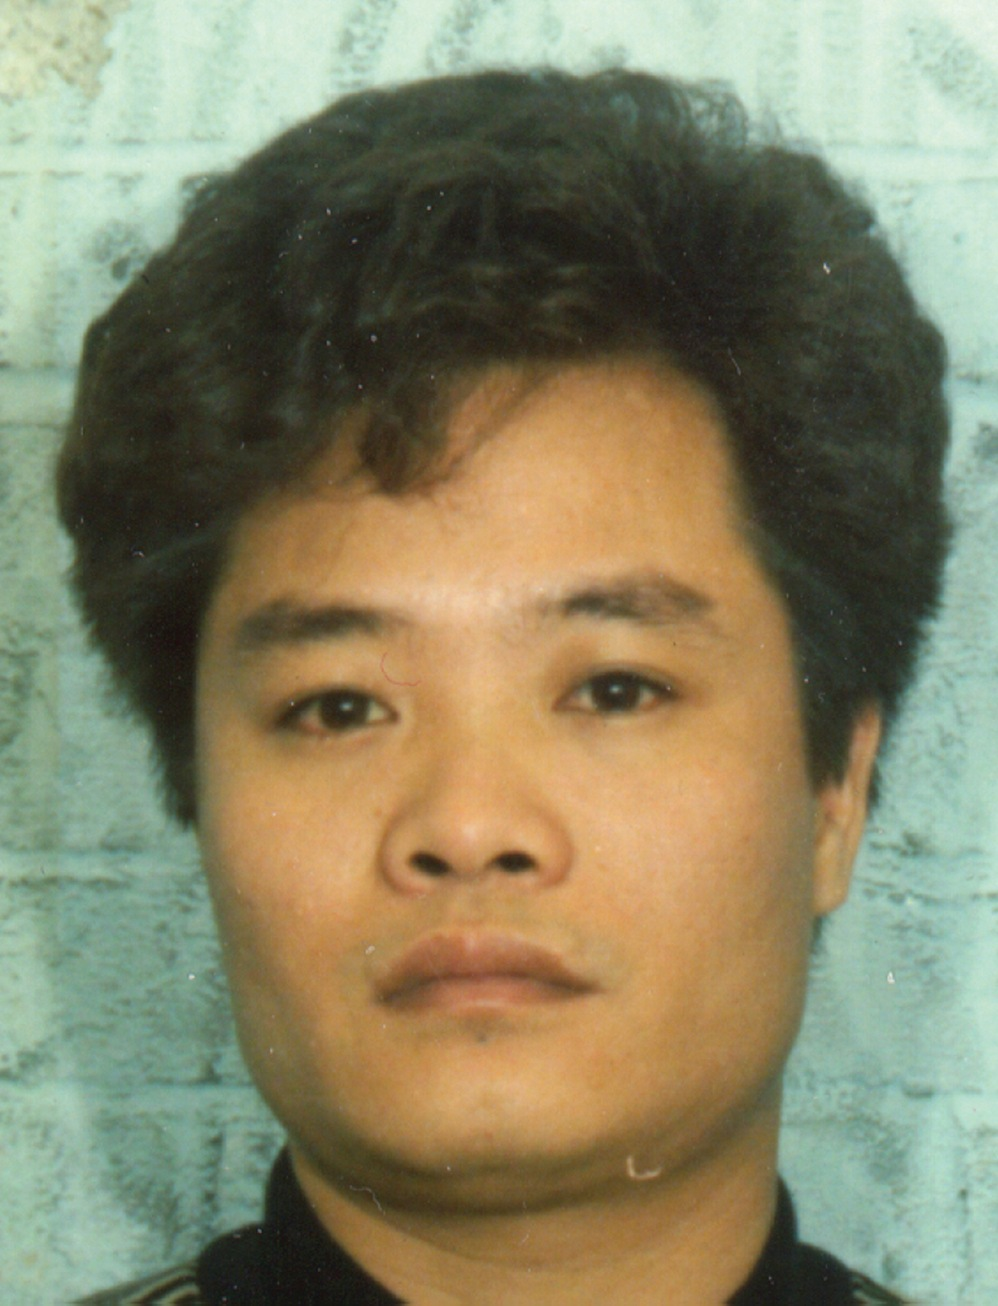 Hung Tien Pham is wanted for his alleged involvement in the execution-style murders of five men at a Chinatown social club in Boston,